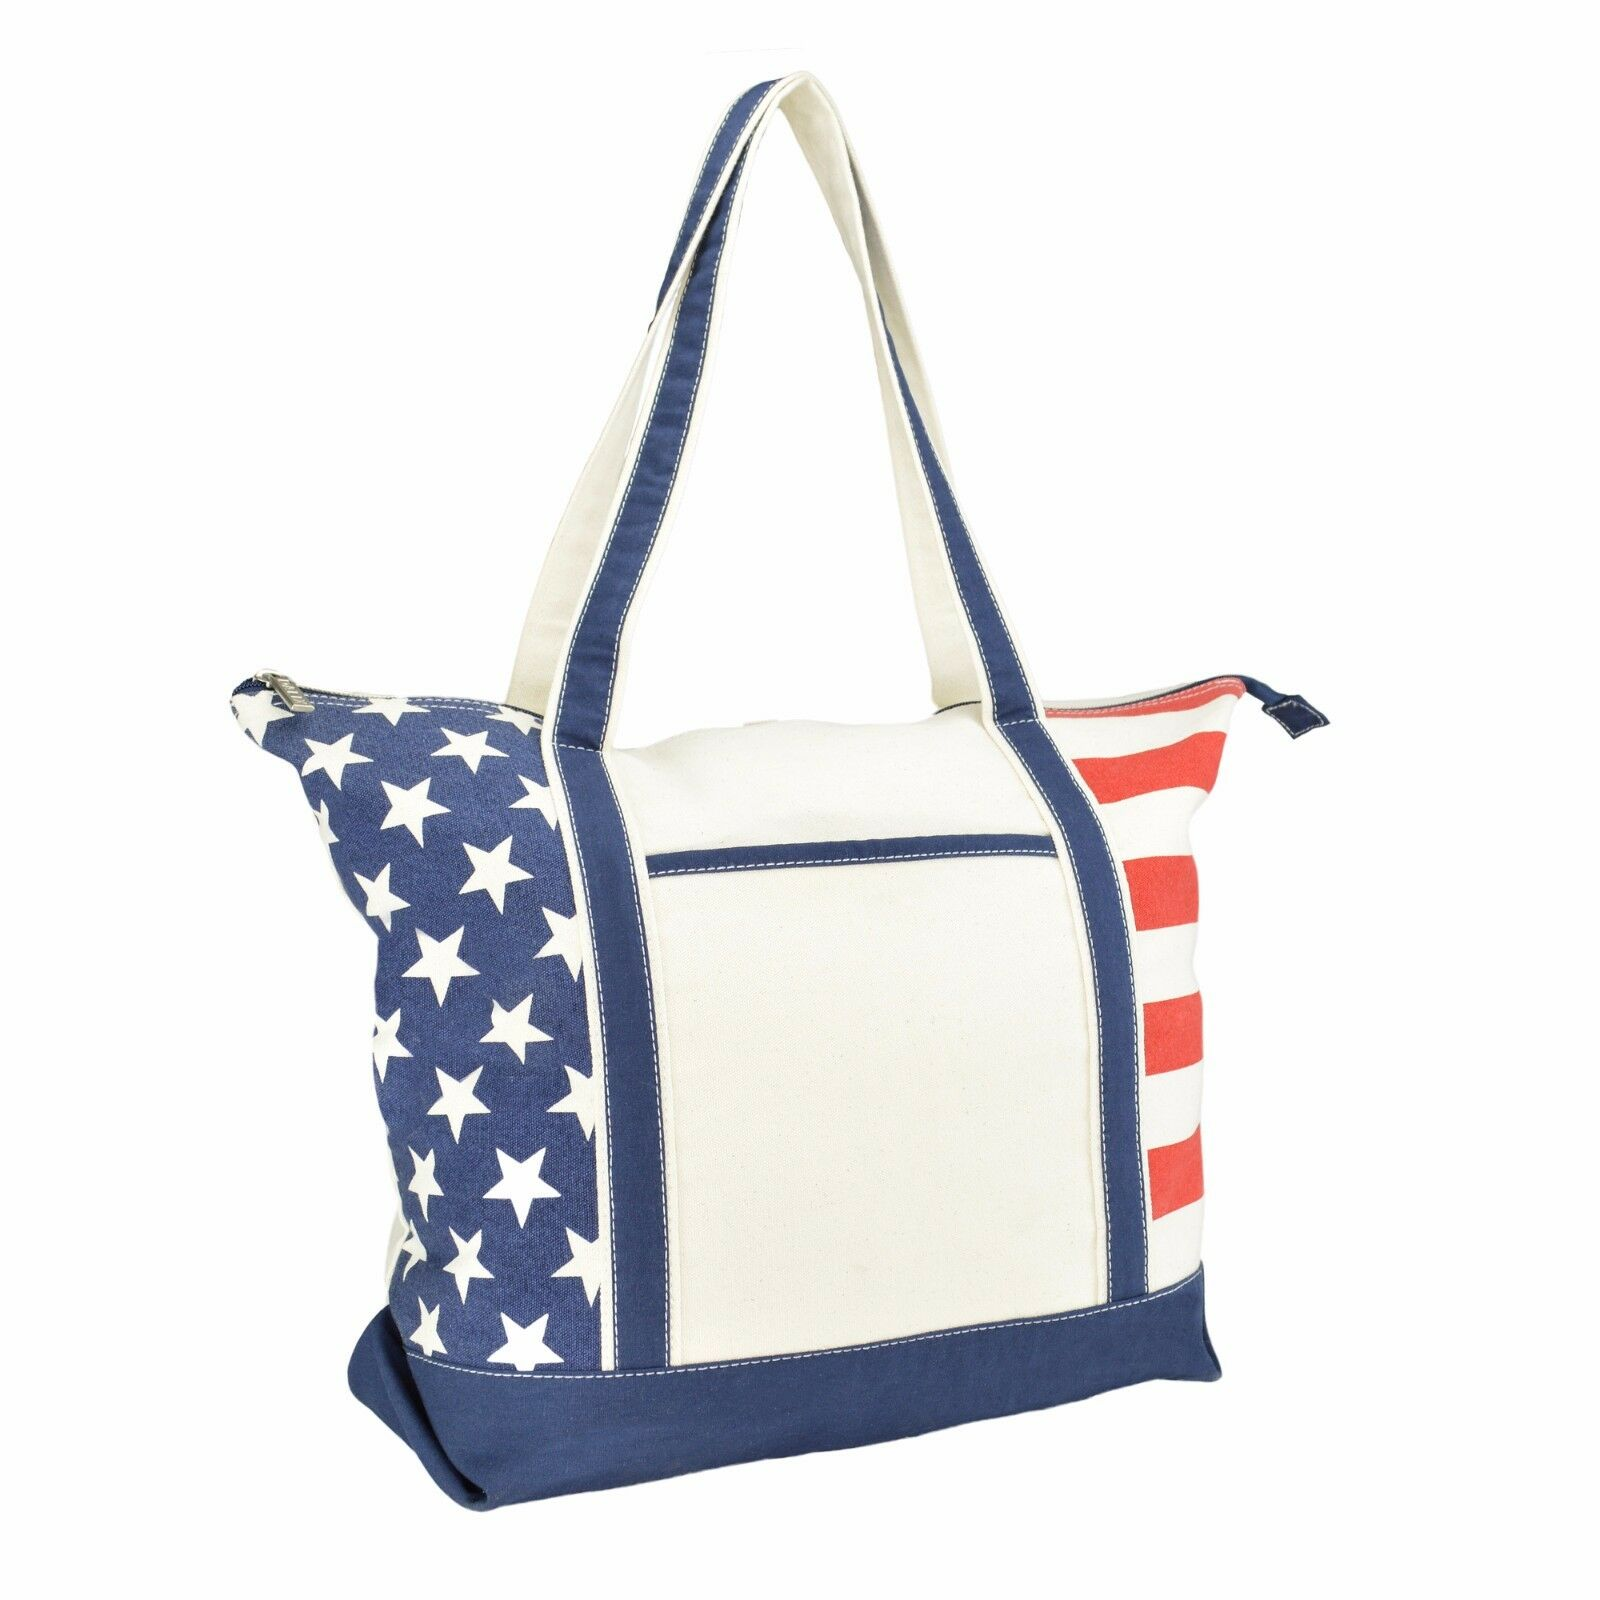 DALIX Stars and Stripes Zippered Cotton Canvas USA Shopping